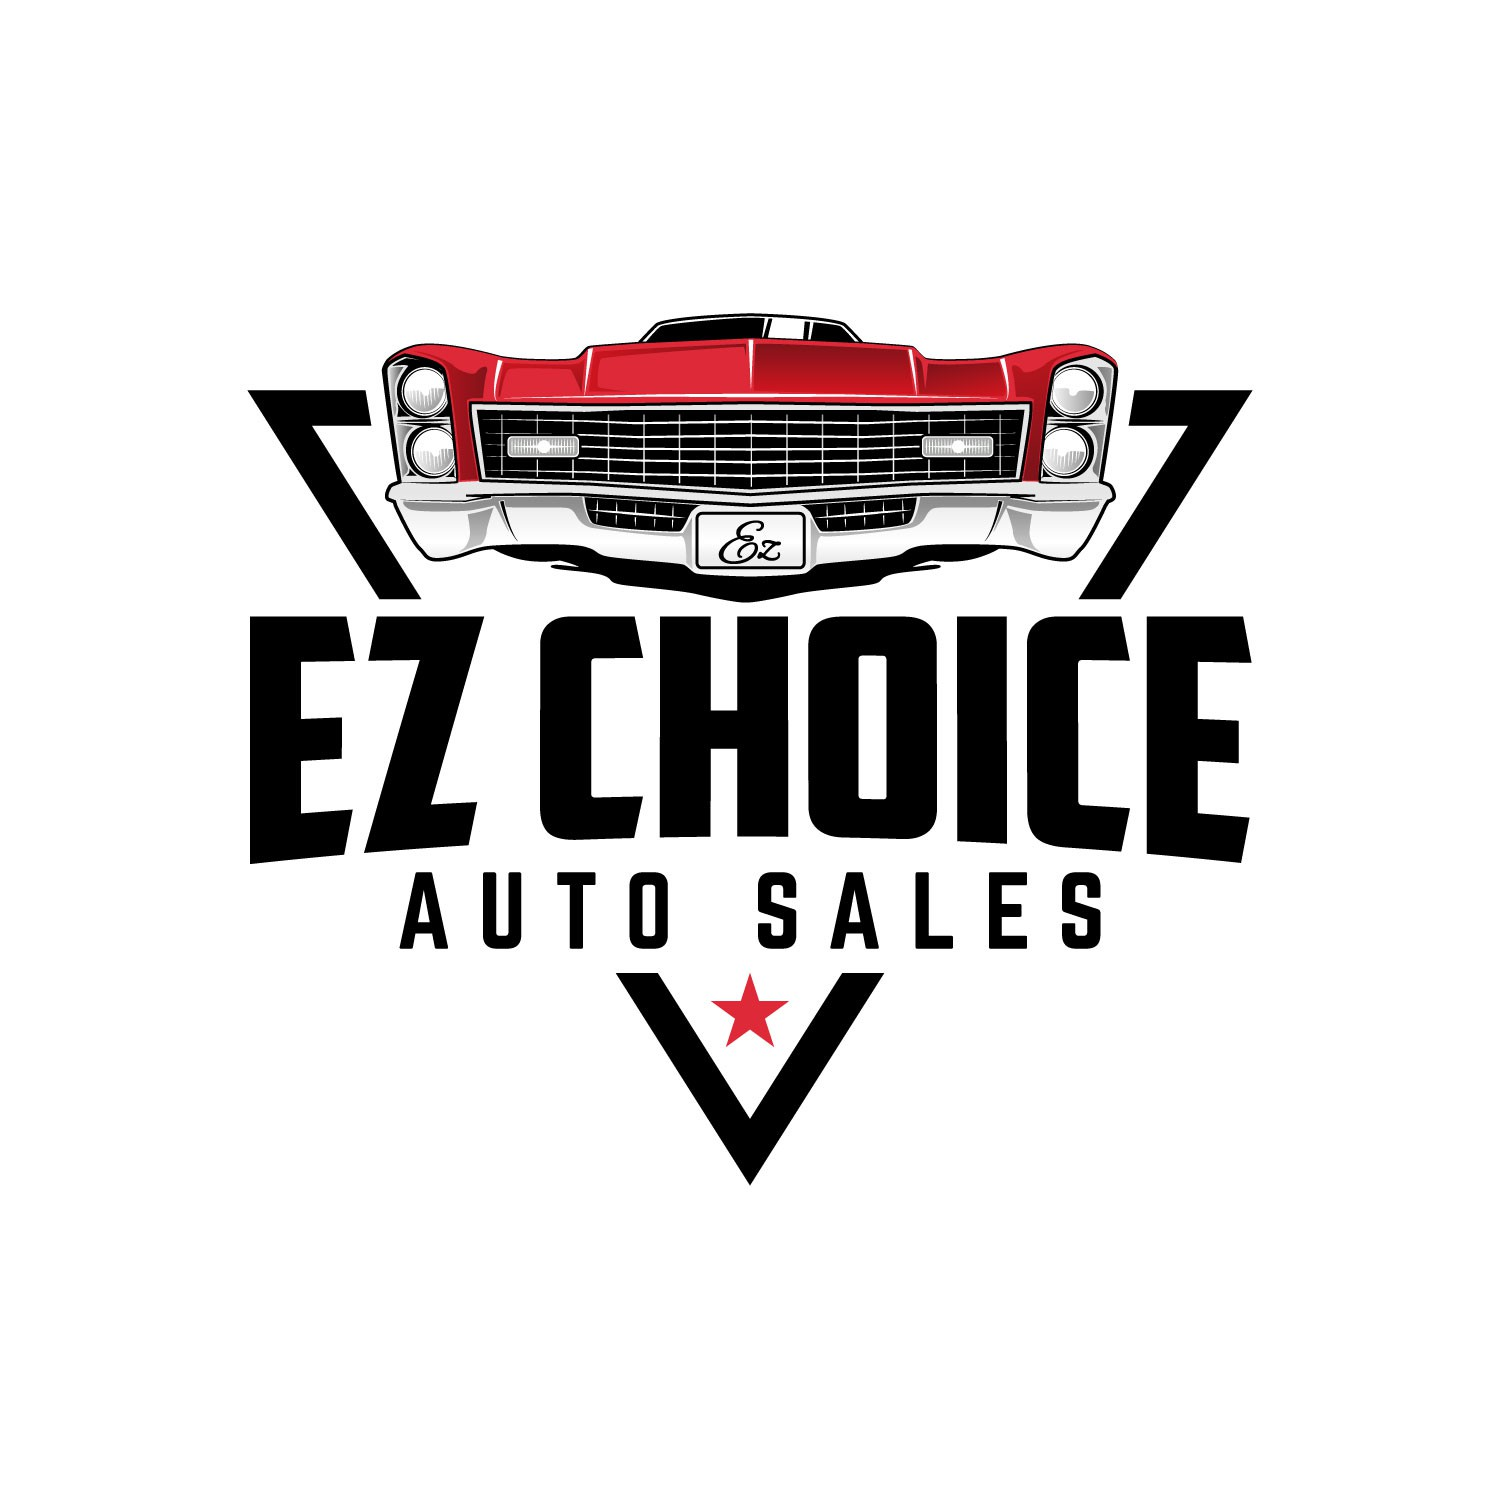 Pre-owned car dealership logo in the Tampa Bay Area